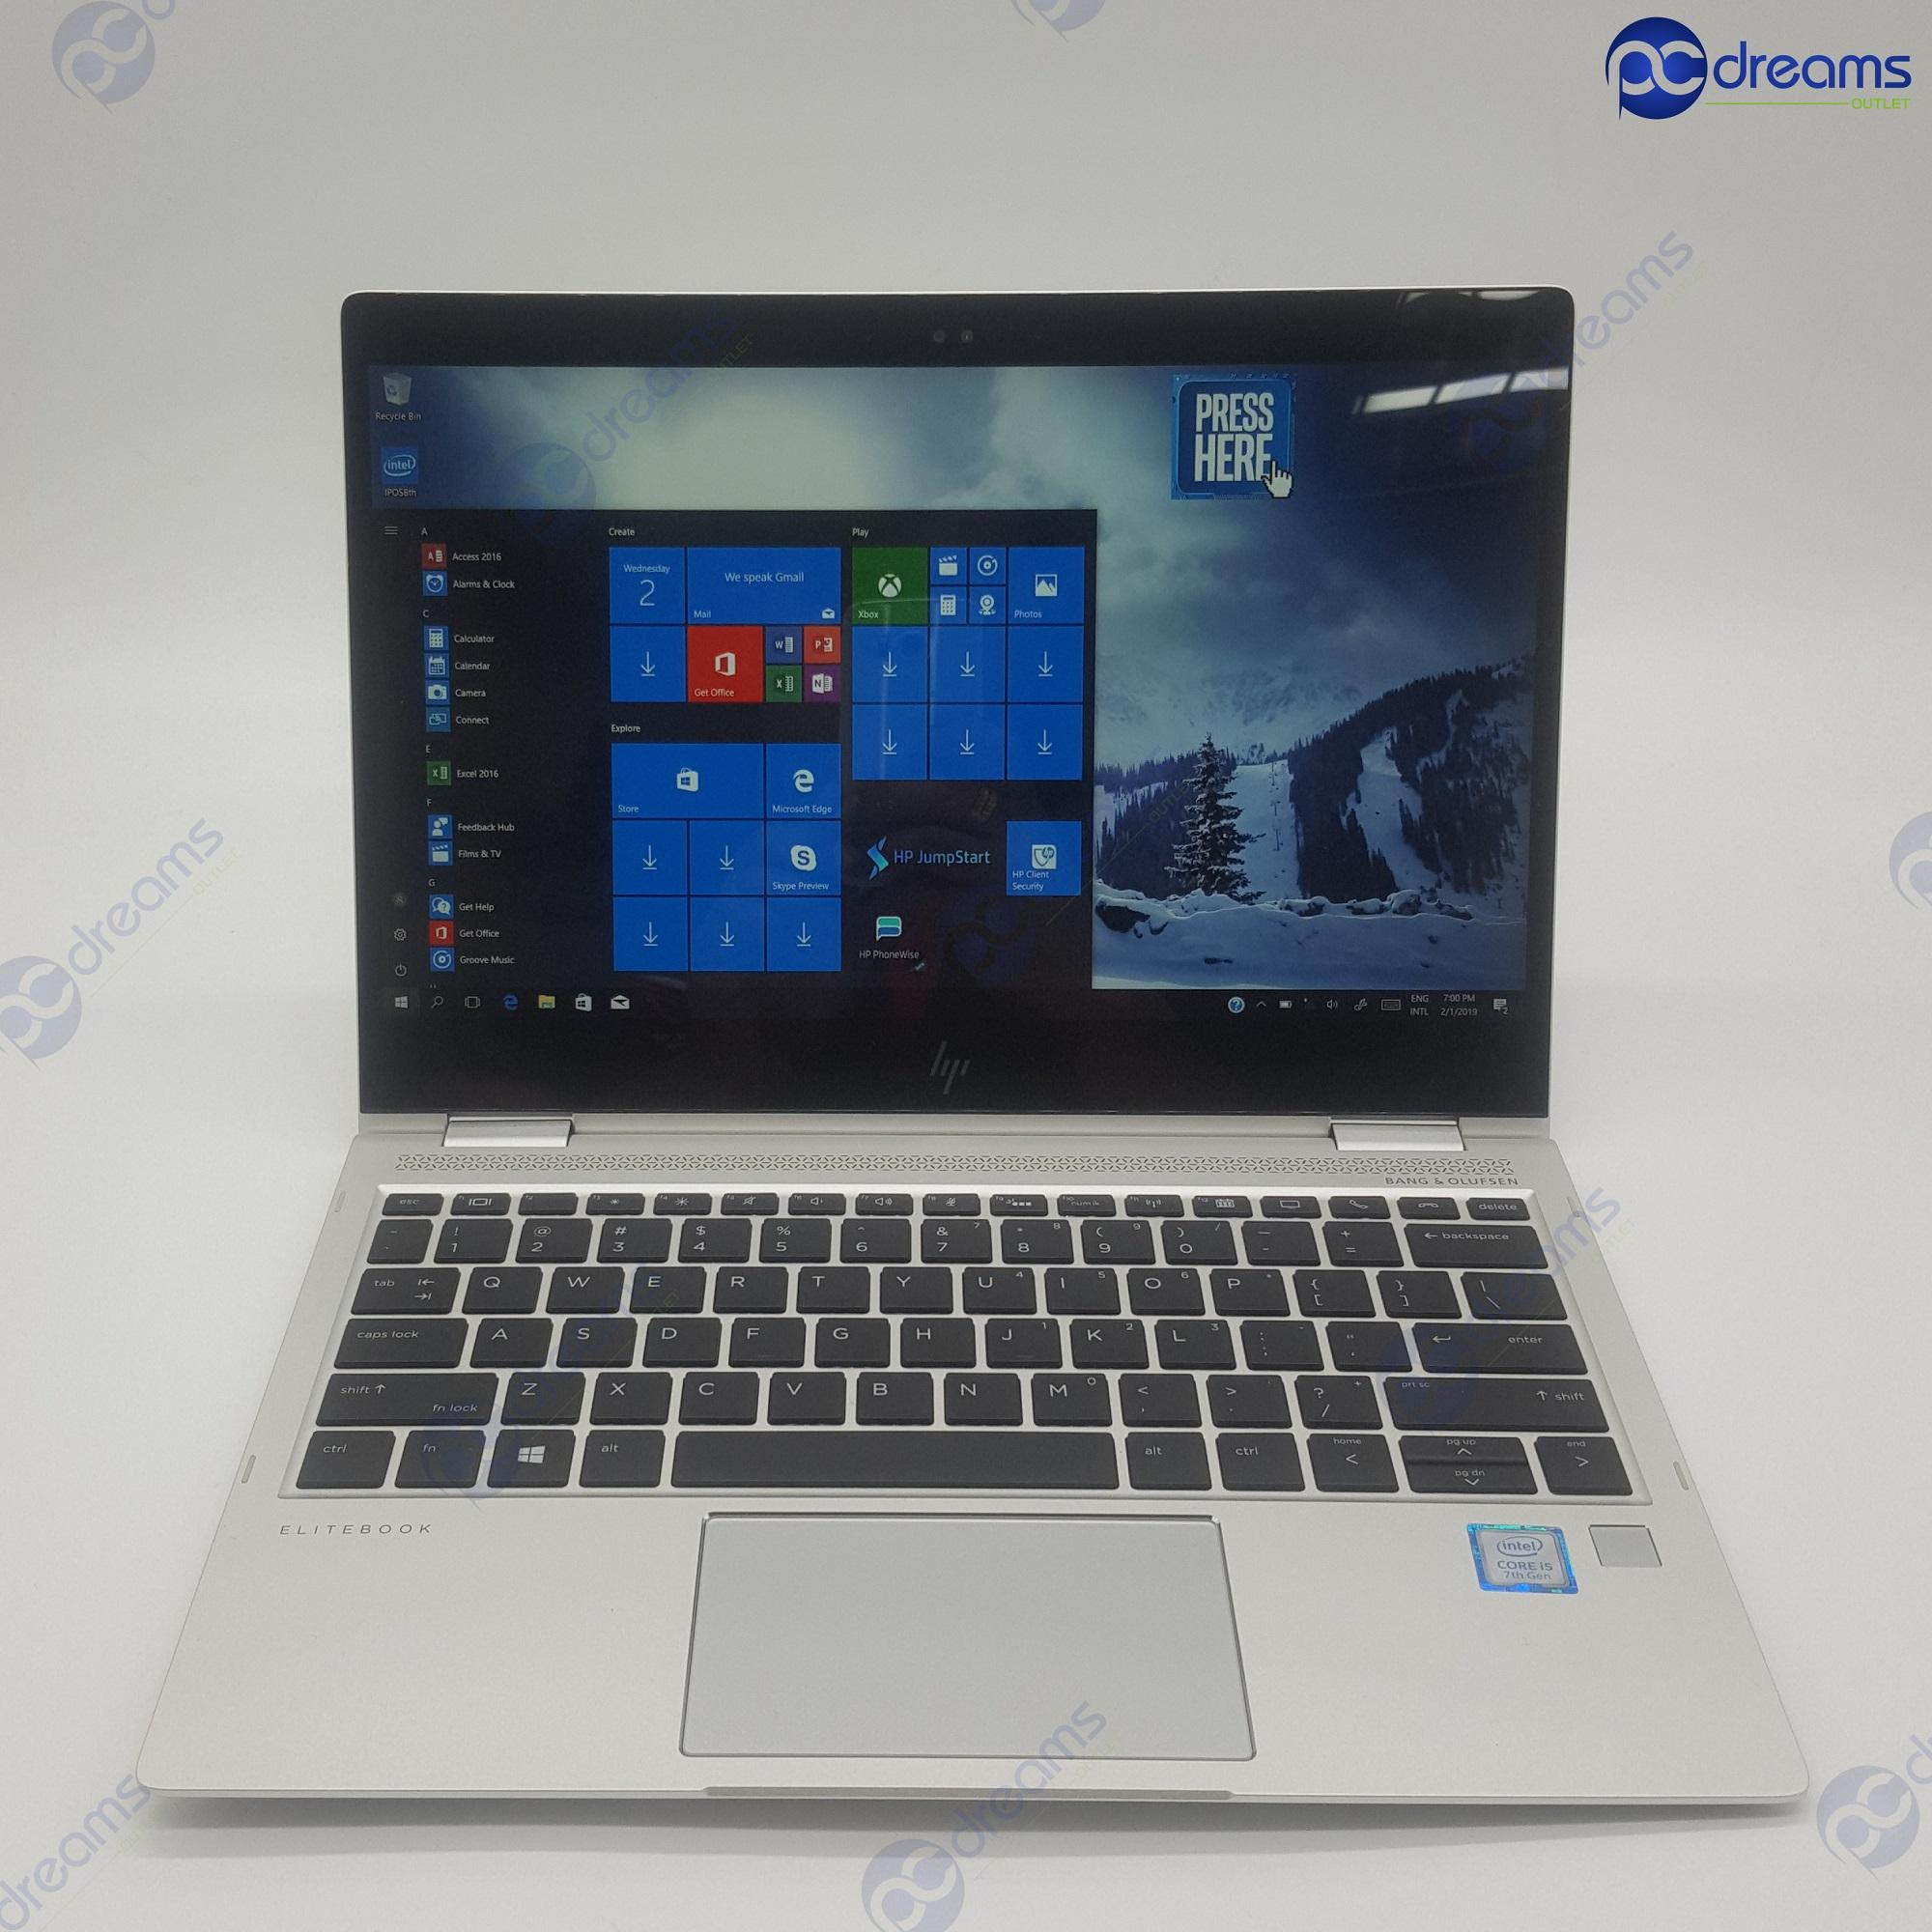 HP ELITEBOOK X360 1030 G2 (X3U21AV) i7-7600U/16GB/256GB PCIe SSD [Premium Refreshed]